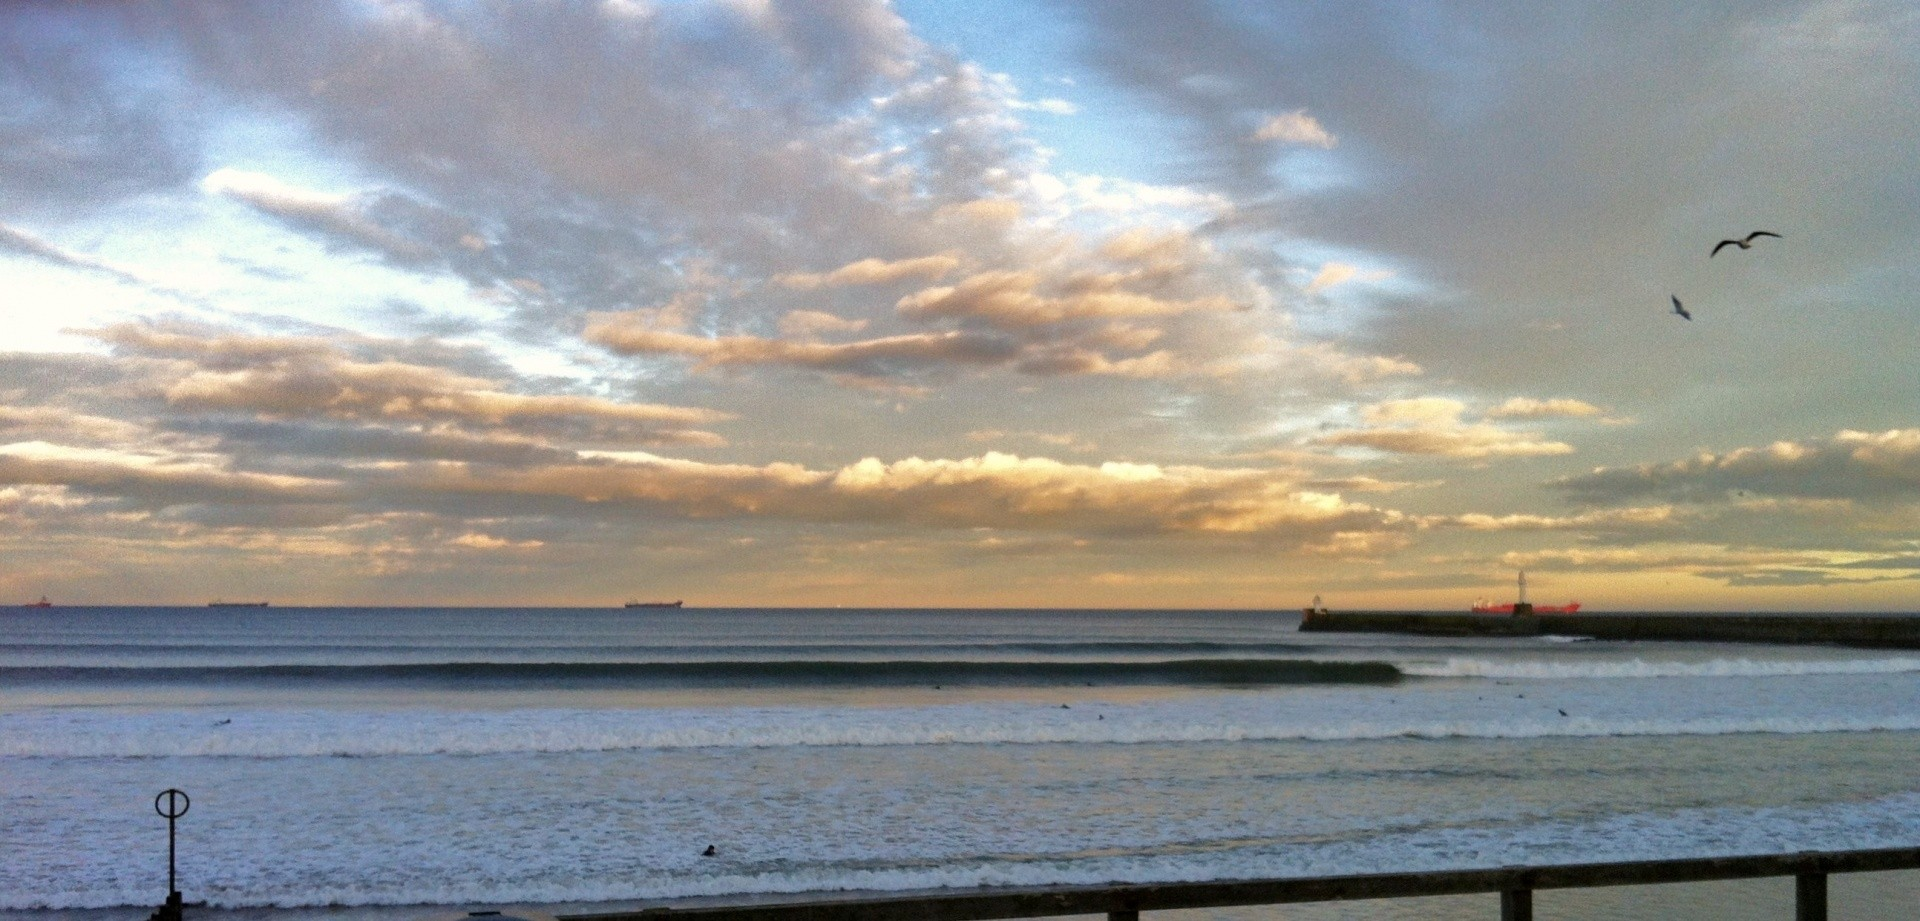 cillman's photo of Aberdeen - Beach